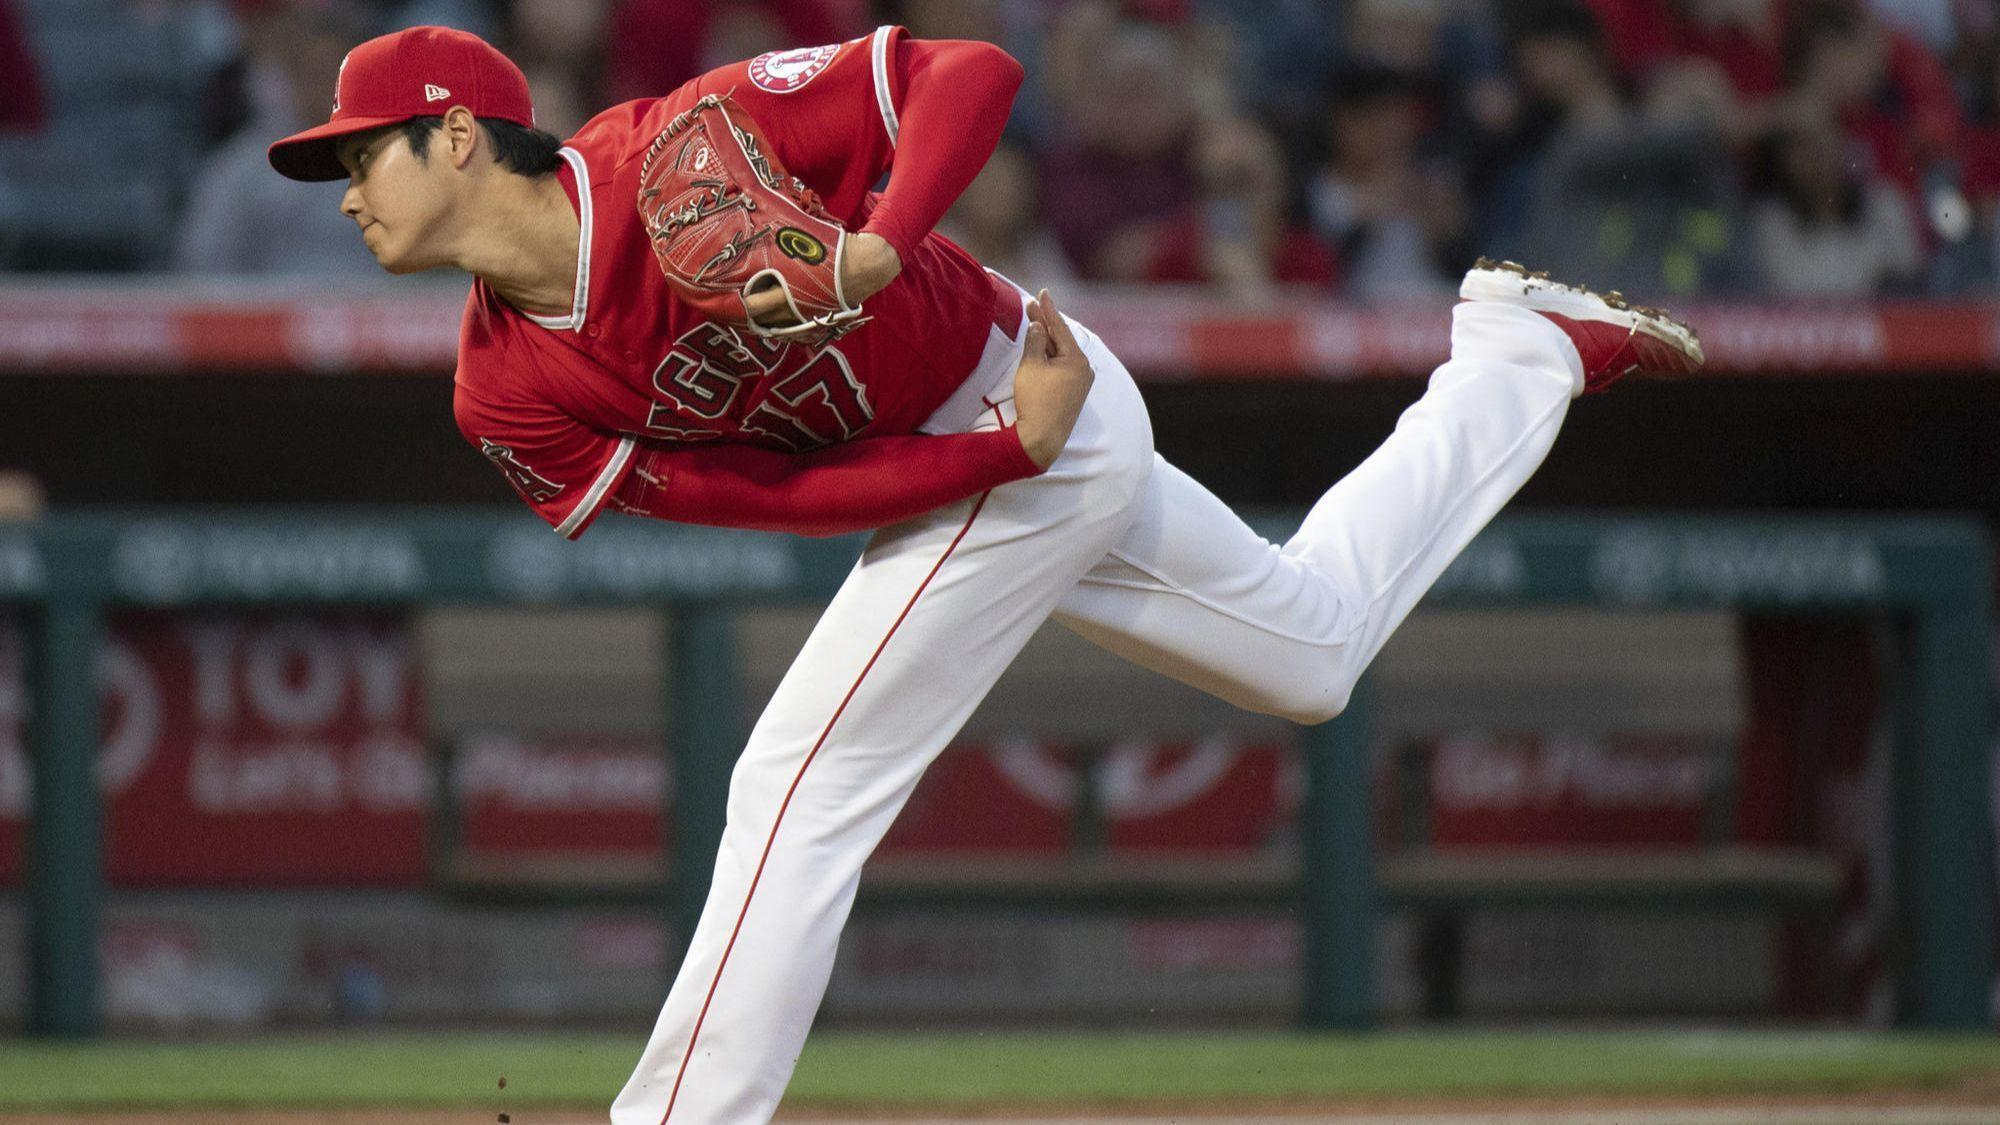 Angels' two-way player Shohei Ohtani cleared to begin throwing program